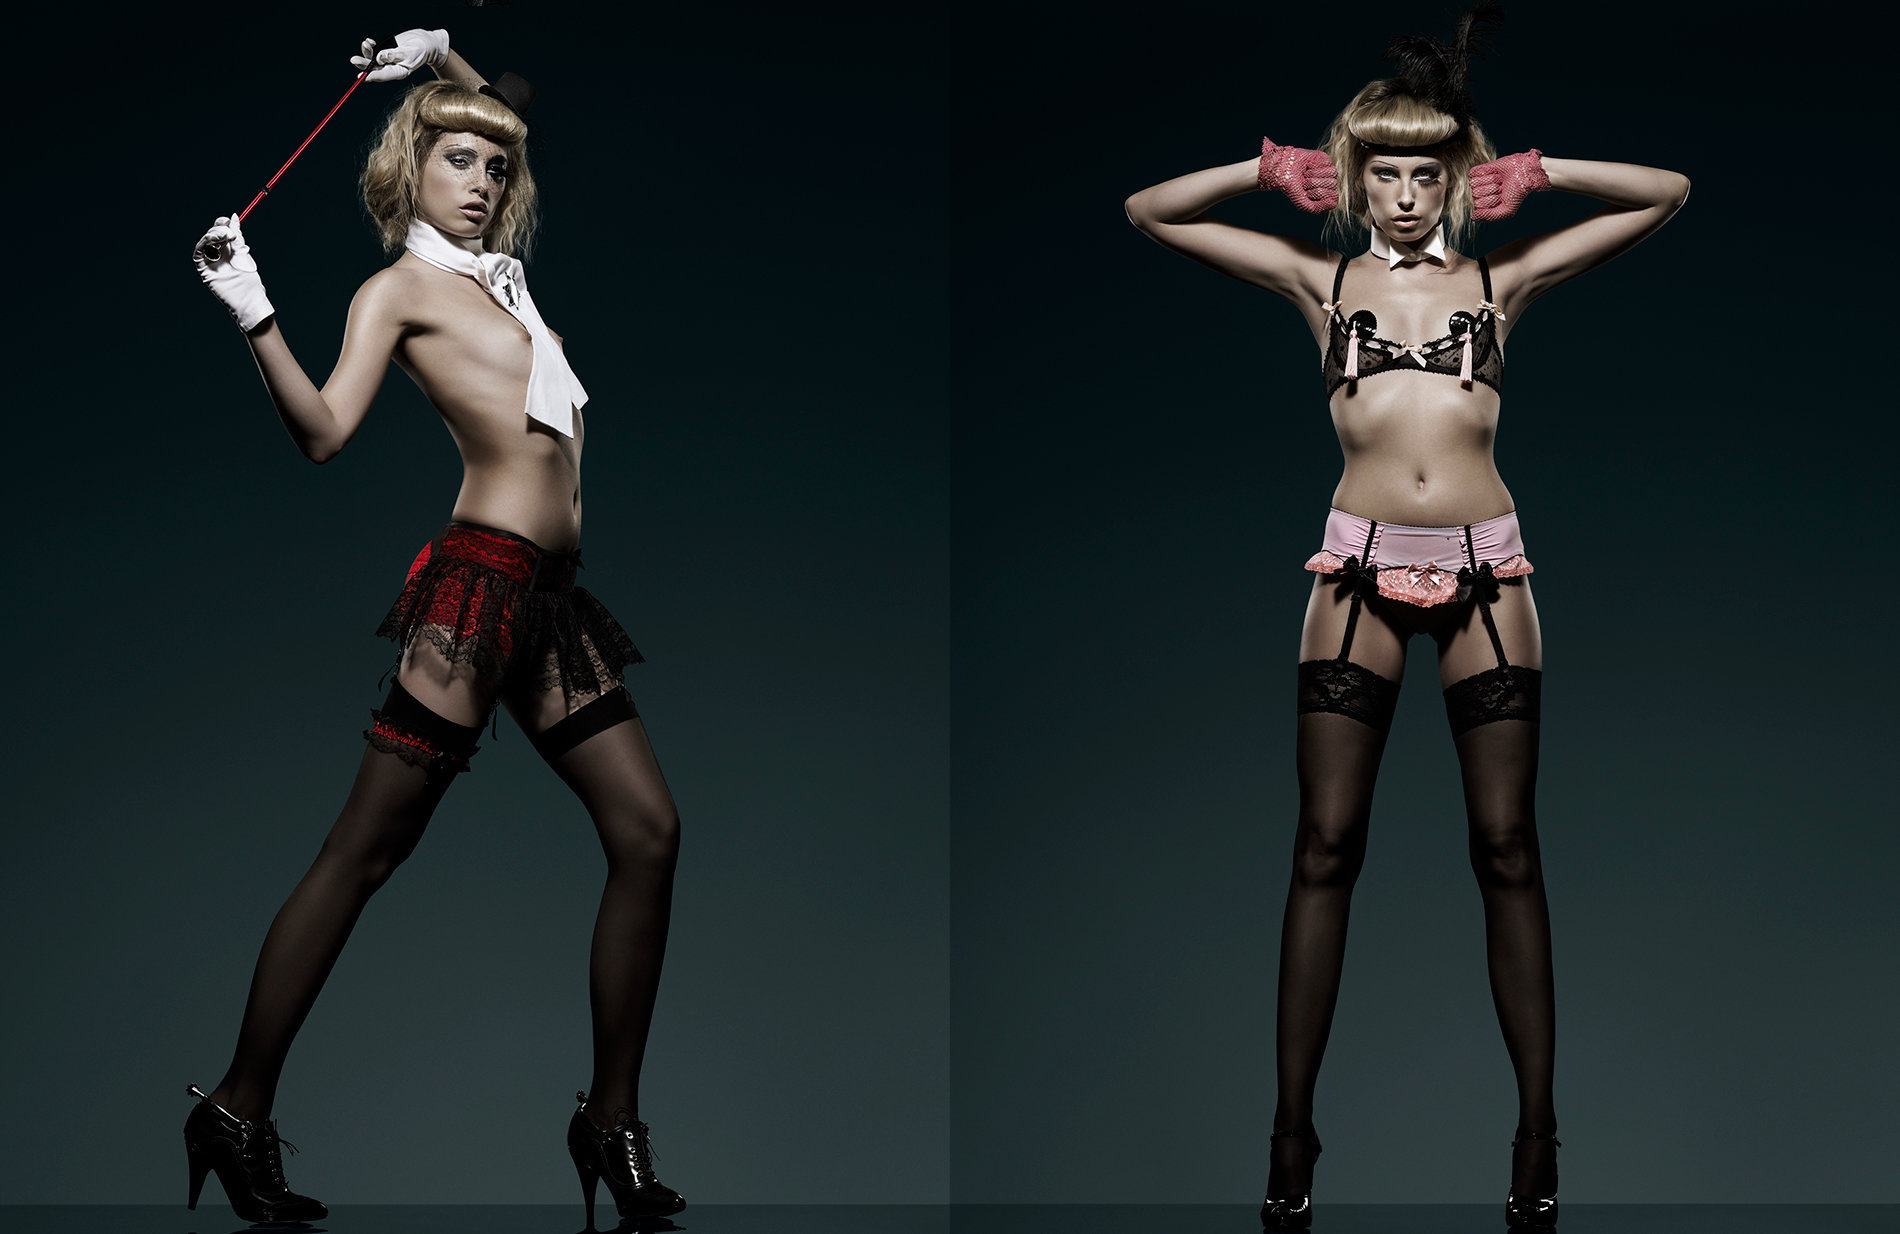 0015_Sexy Burlesque model in black stockings& high heels by Beauty Photographer Kenneth Rimm.jpg